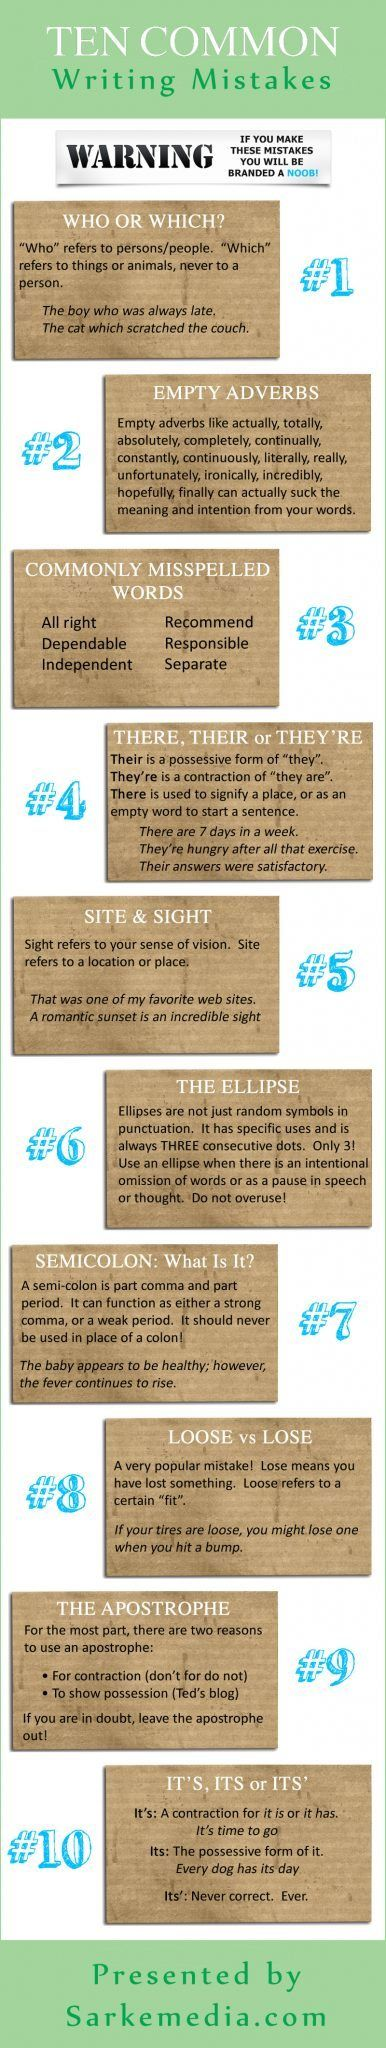 writing mistakes infographic copy